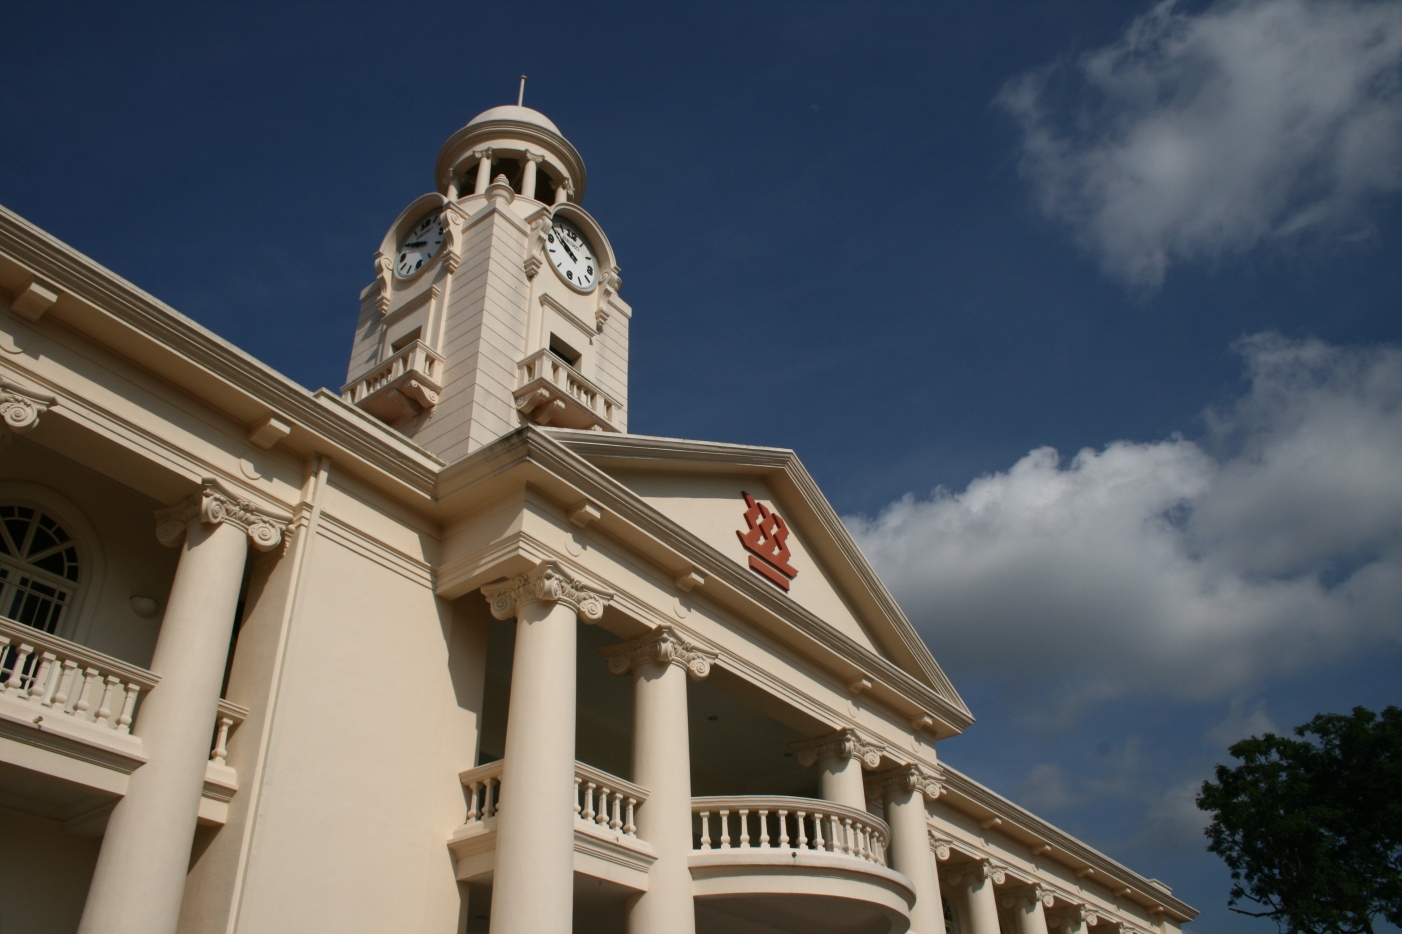 HCI Clock Tower